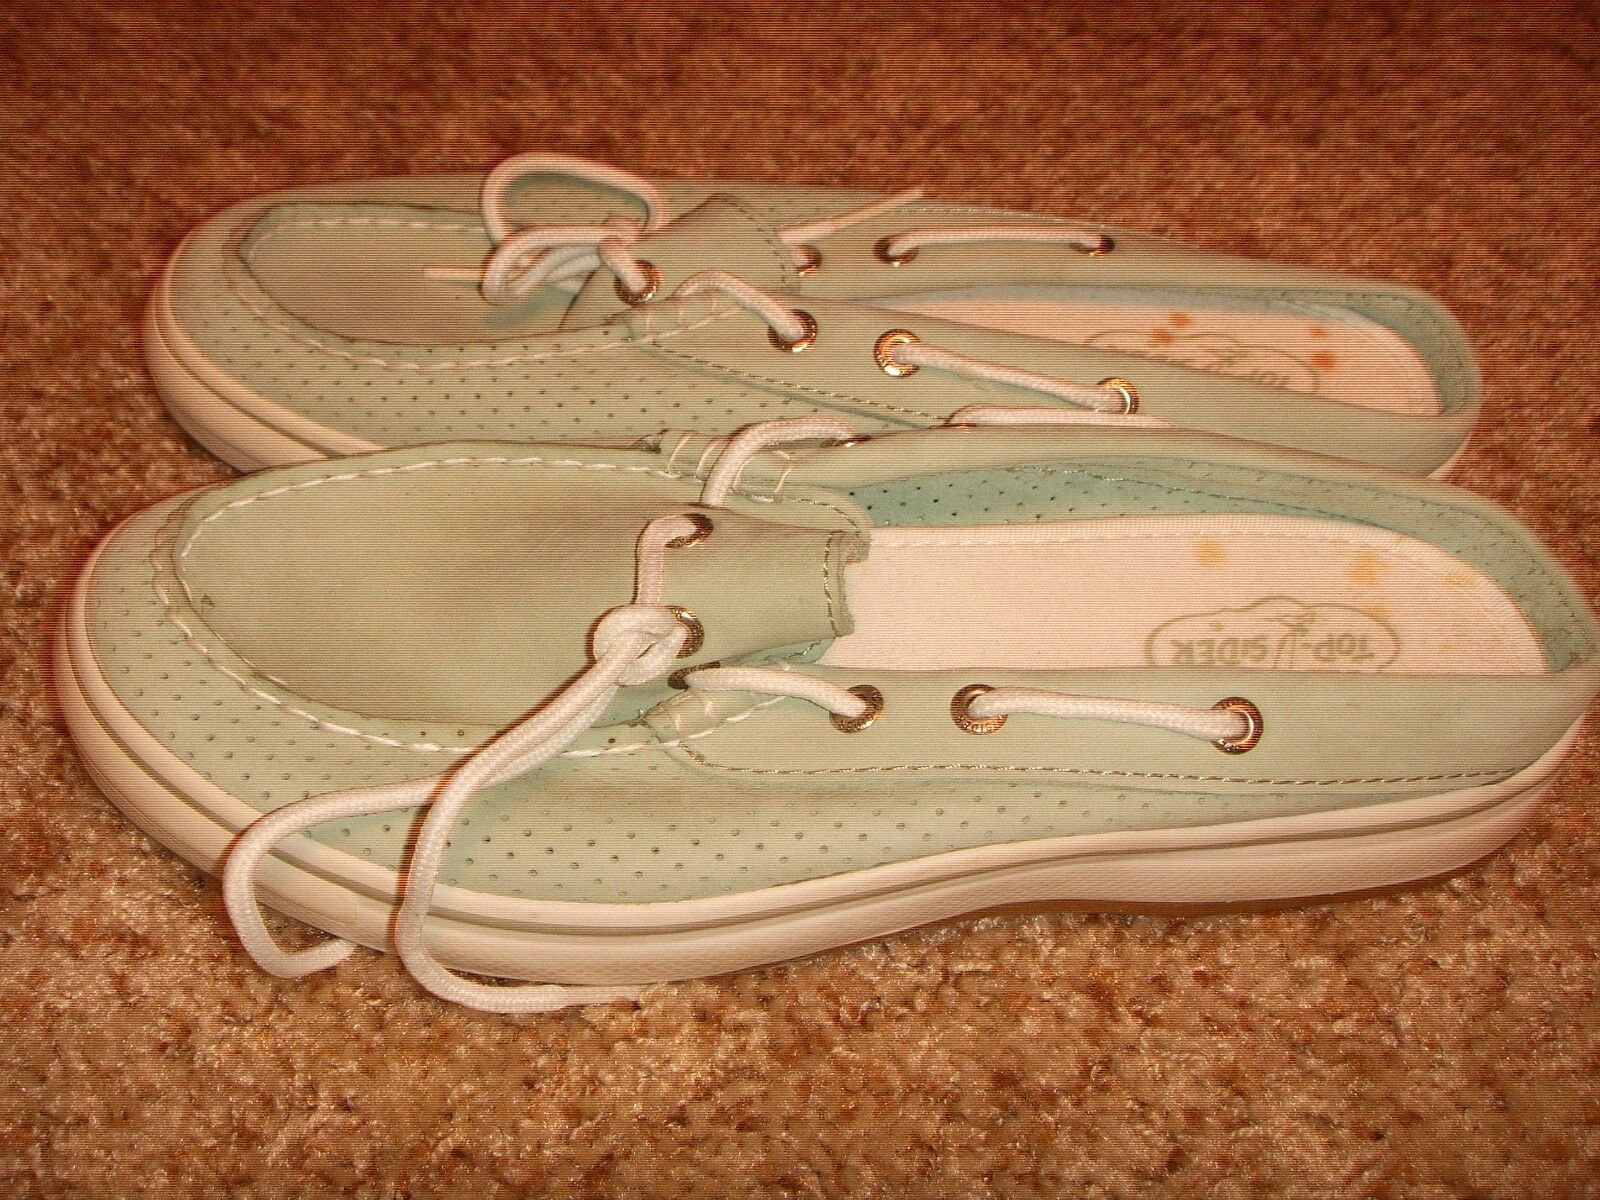 Sperry Top Leather Sider Slip On Shoes Mules Sea Green Leather Top Womens Sz 7M 2508d9